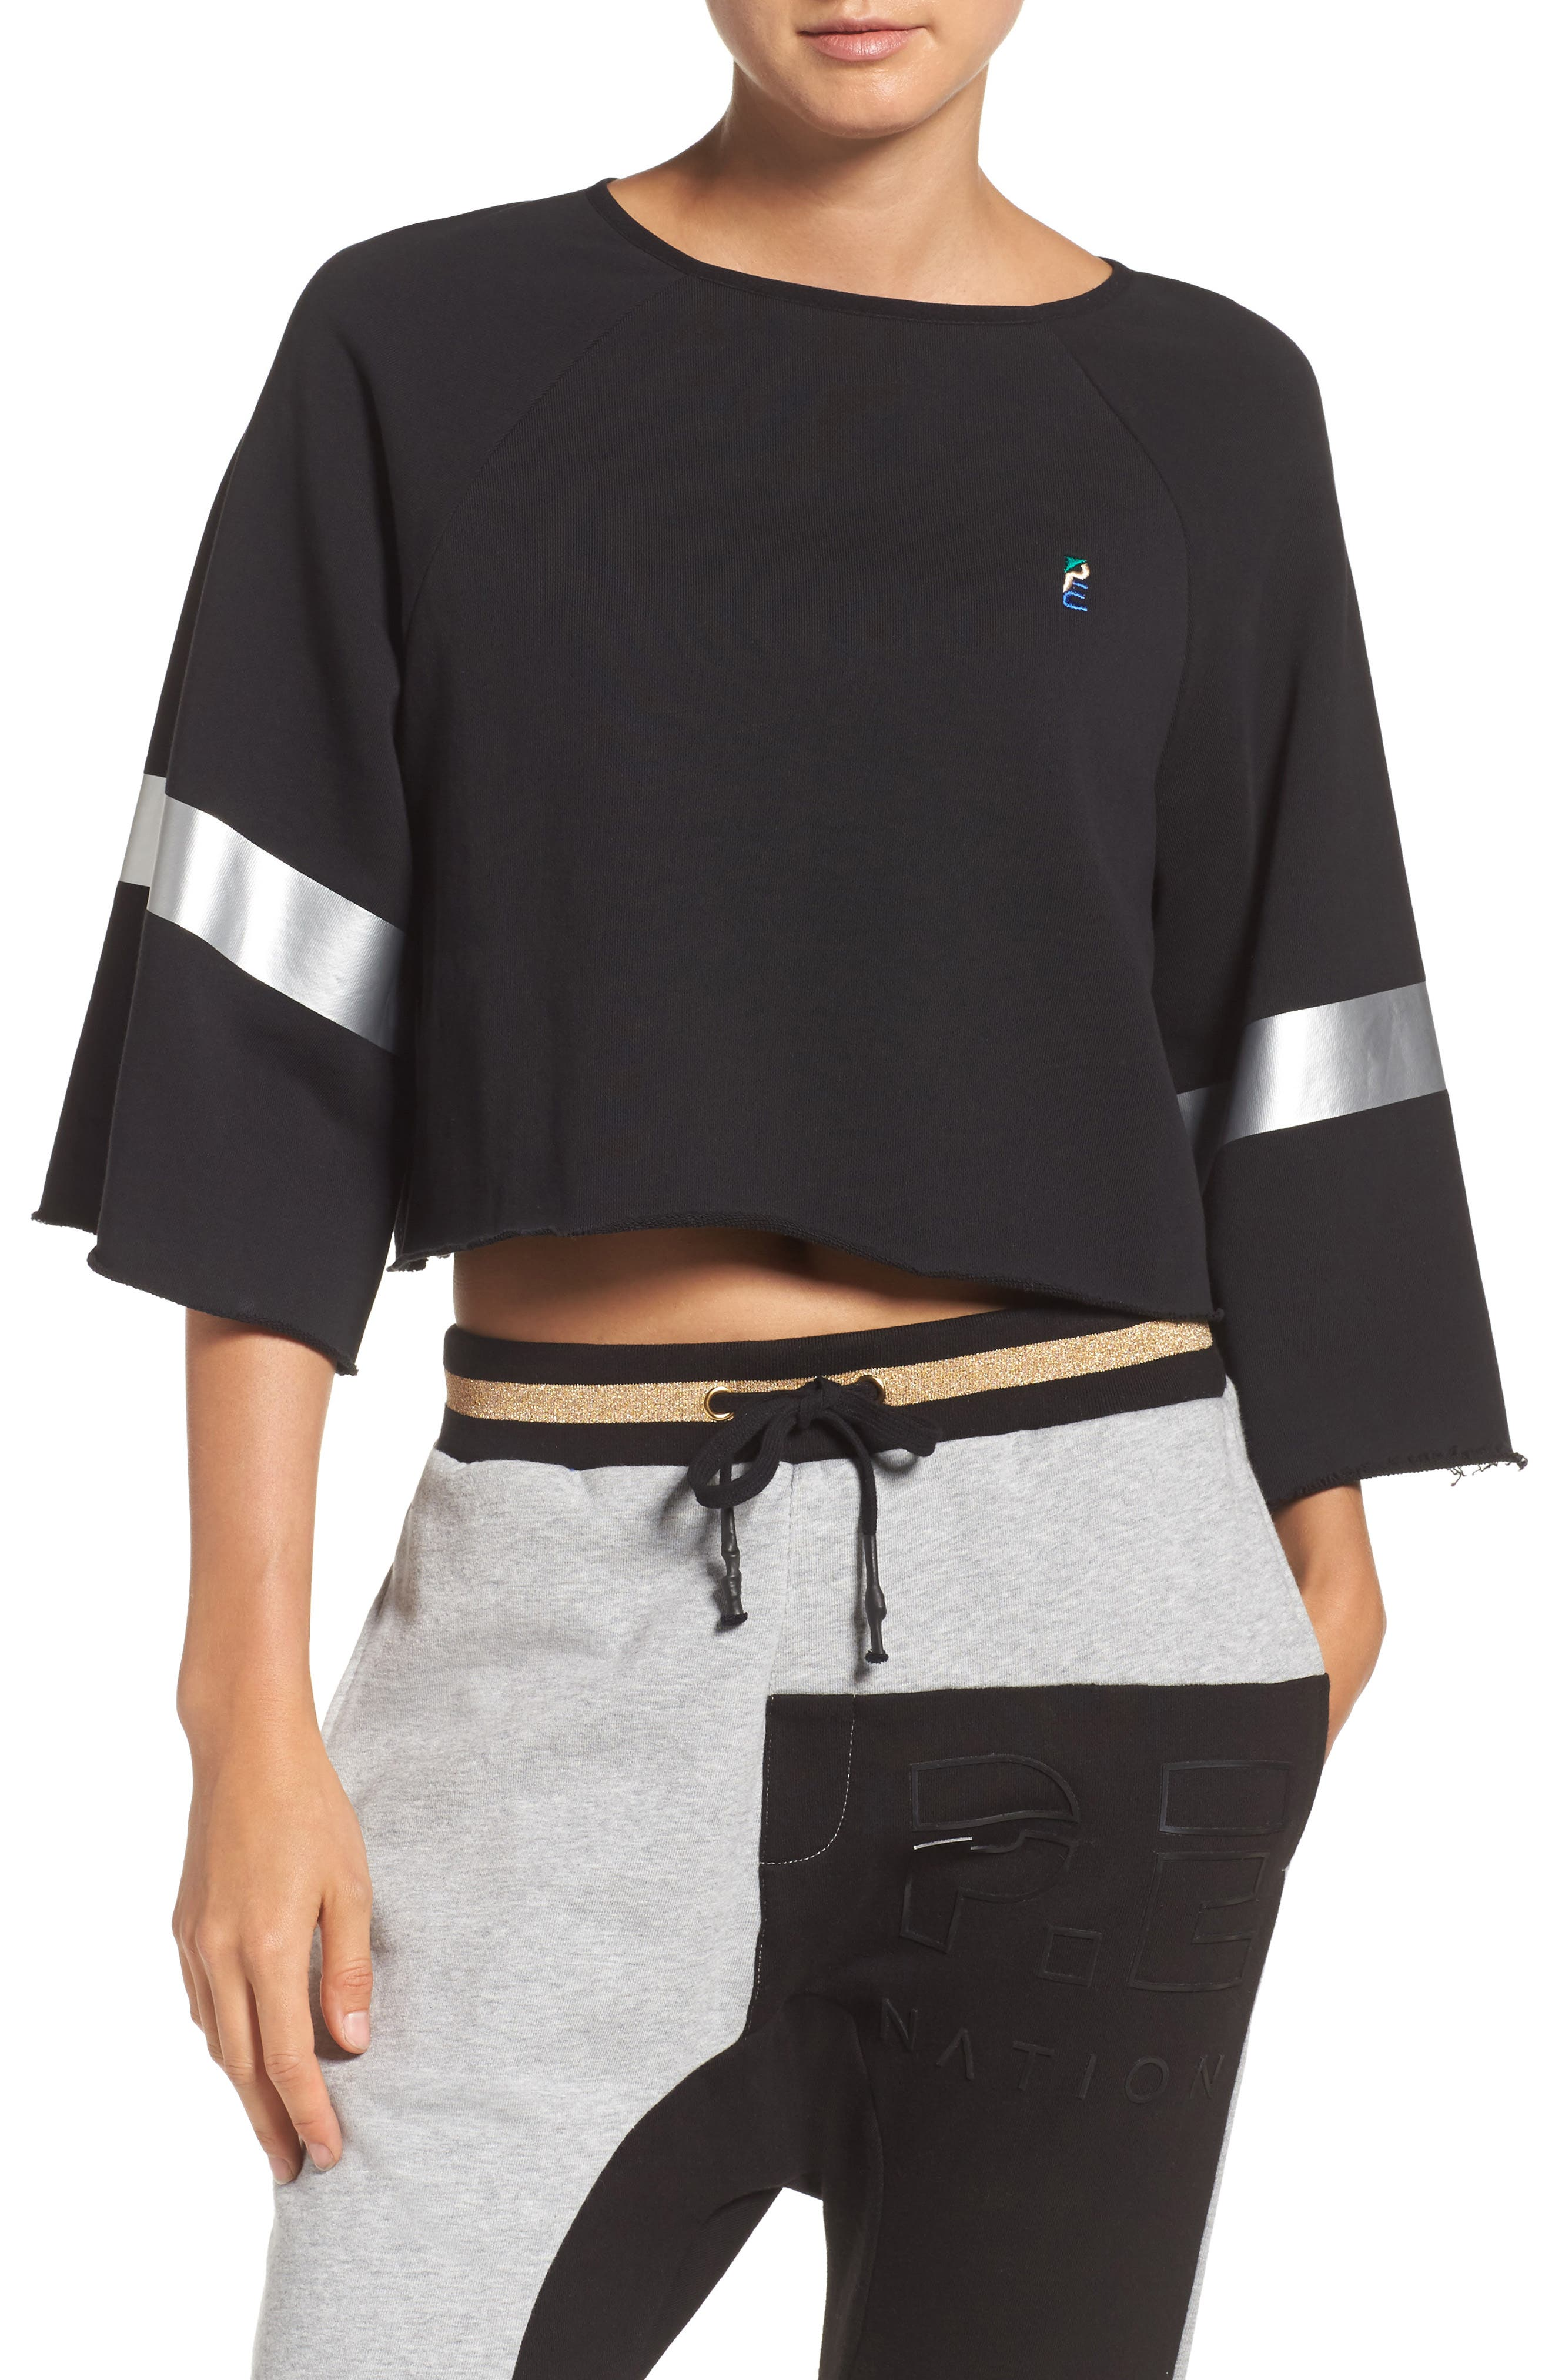 Alternate Image 1 Selected - P.E Nation Power Hitter Crop Sweatshirt